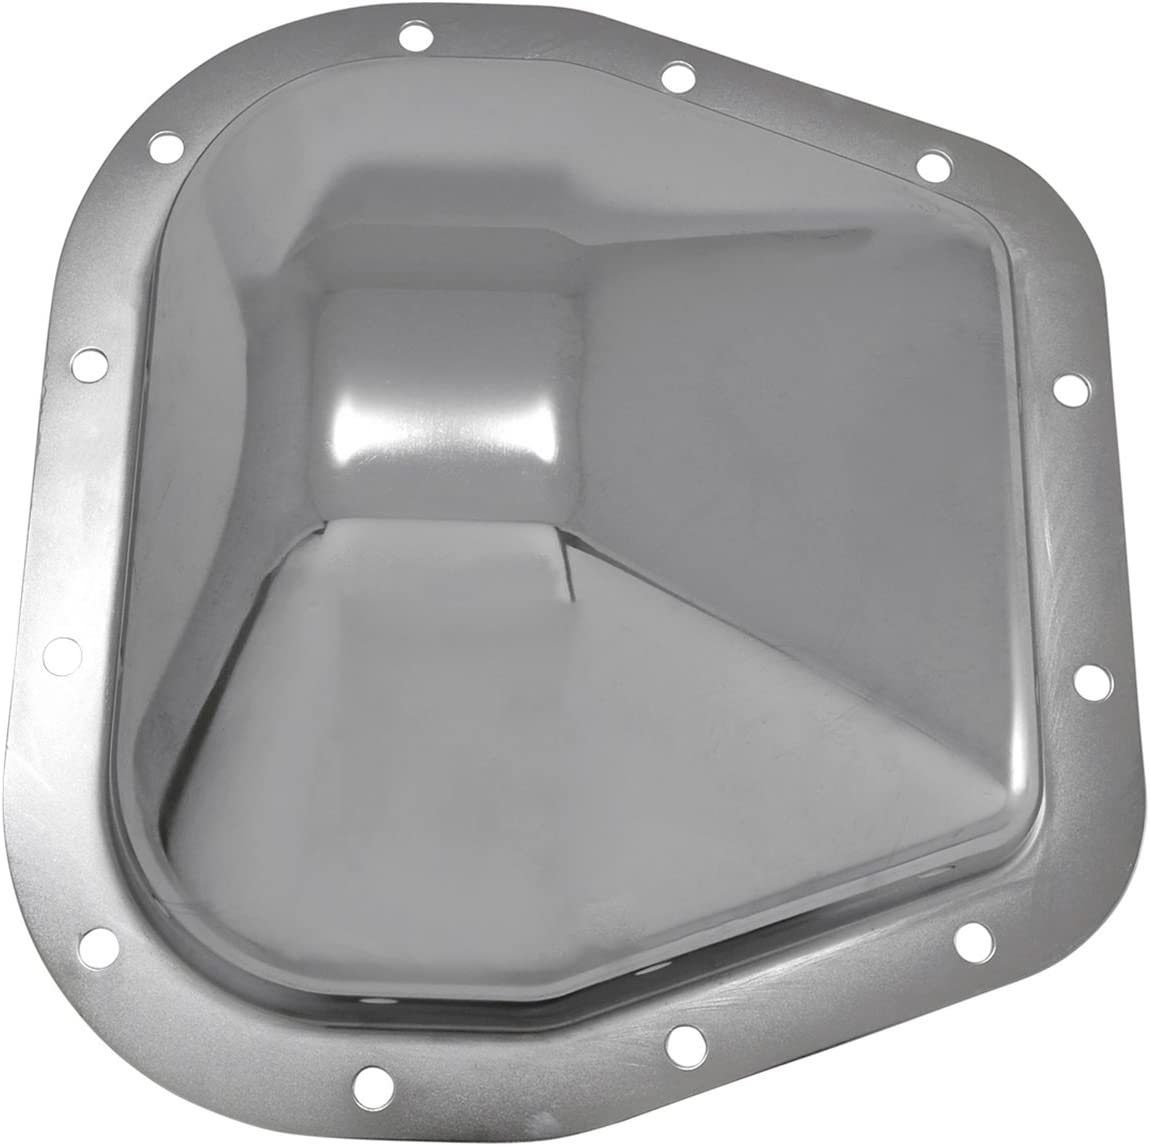 Spectre Performance 6092 9.75 12-Bolt Differential Cover for Ford